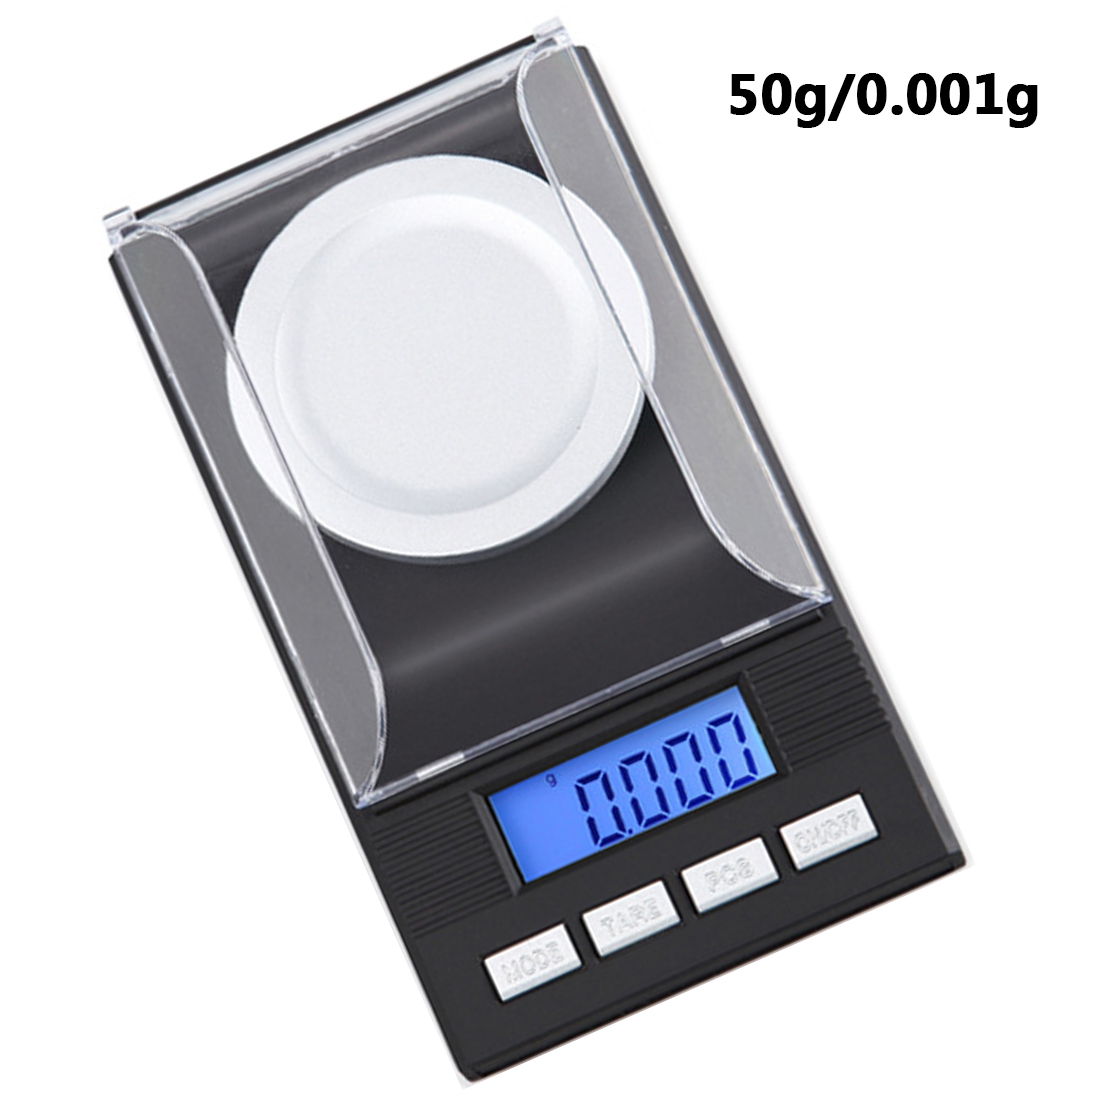 New Portable Mini 20g/50g/100g/0.001g Digital Scale LCD Electronic Capacity Balance Diamond Jewelry High Precision Pocket Scale цена